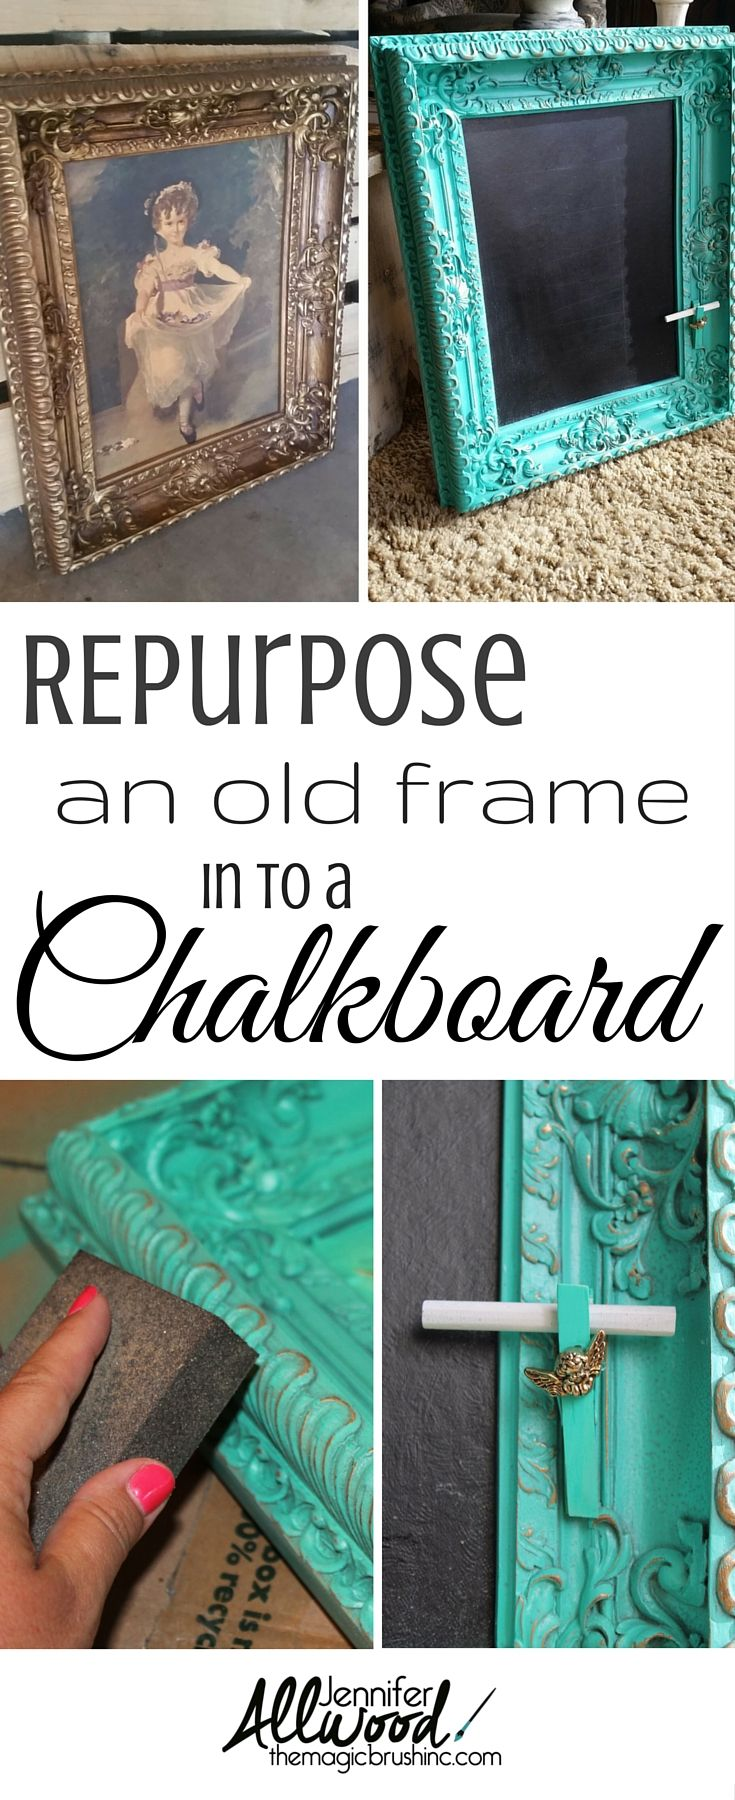 Ideas : Repurpose your thrift store art & frame into a stylish chalkboard! Makes an awesome gift! More DIY projects at theMagicBrushinc.com